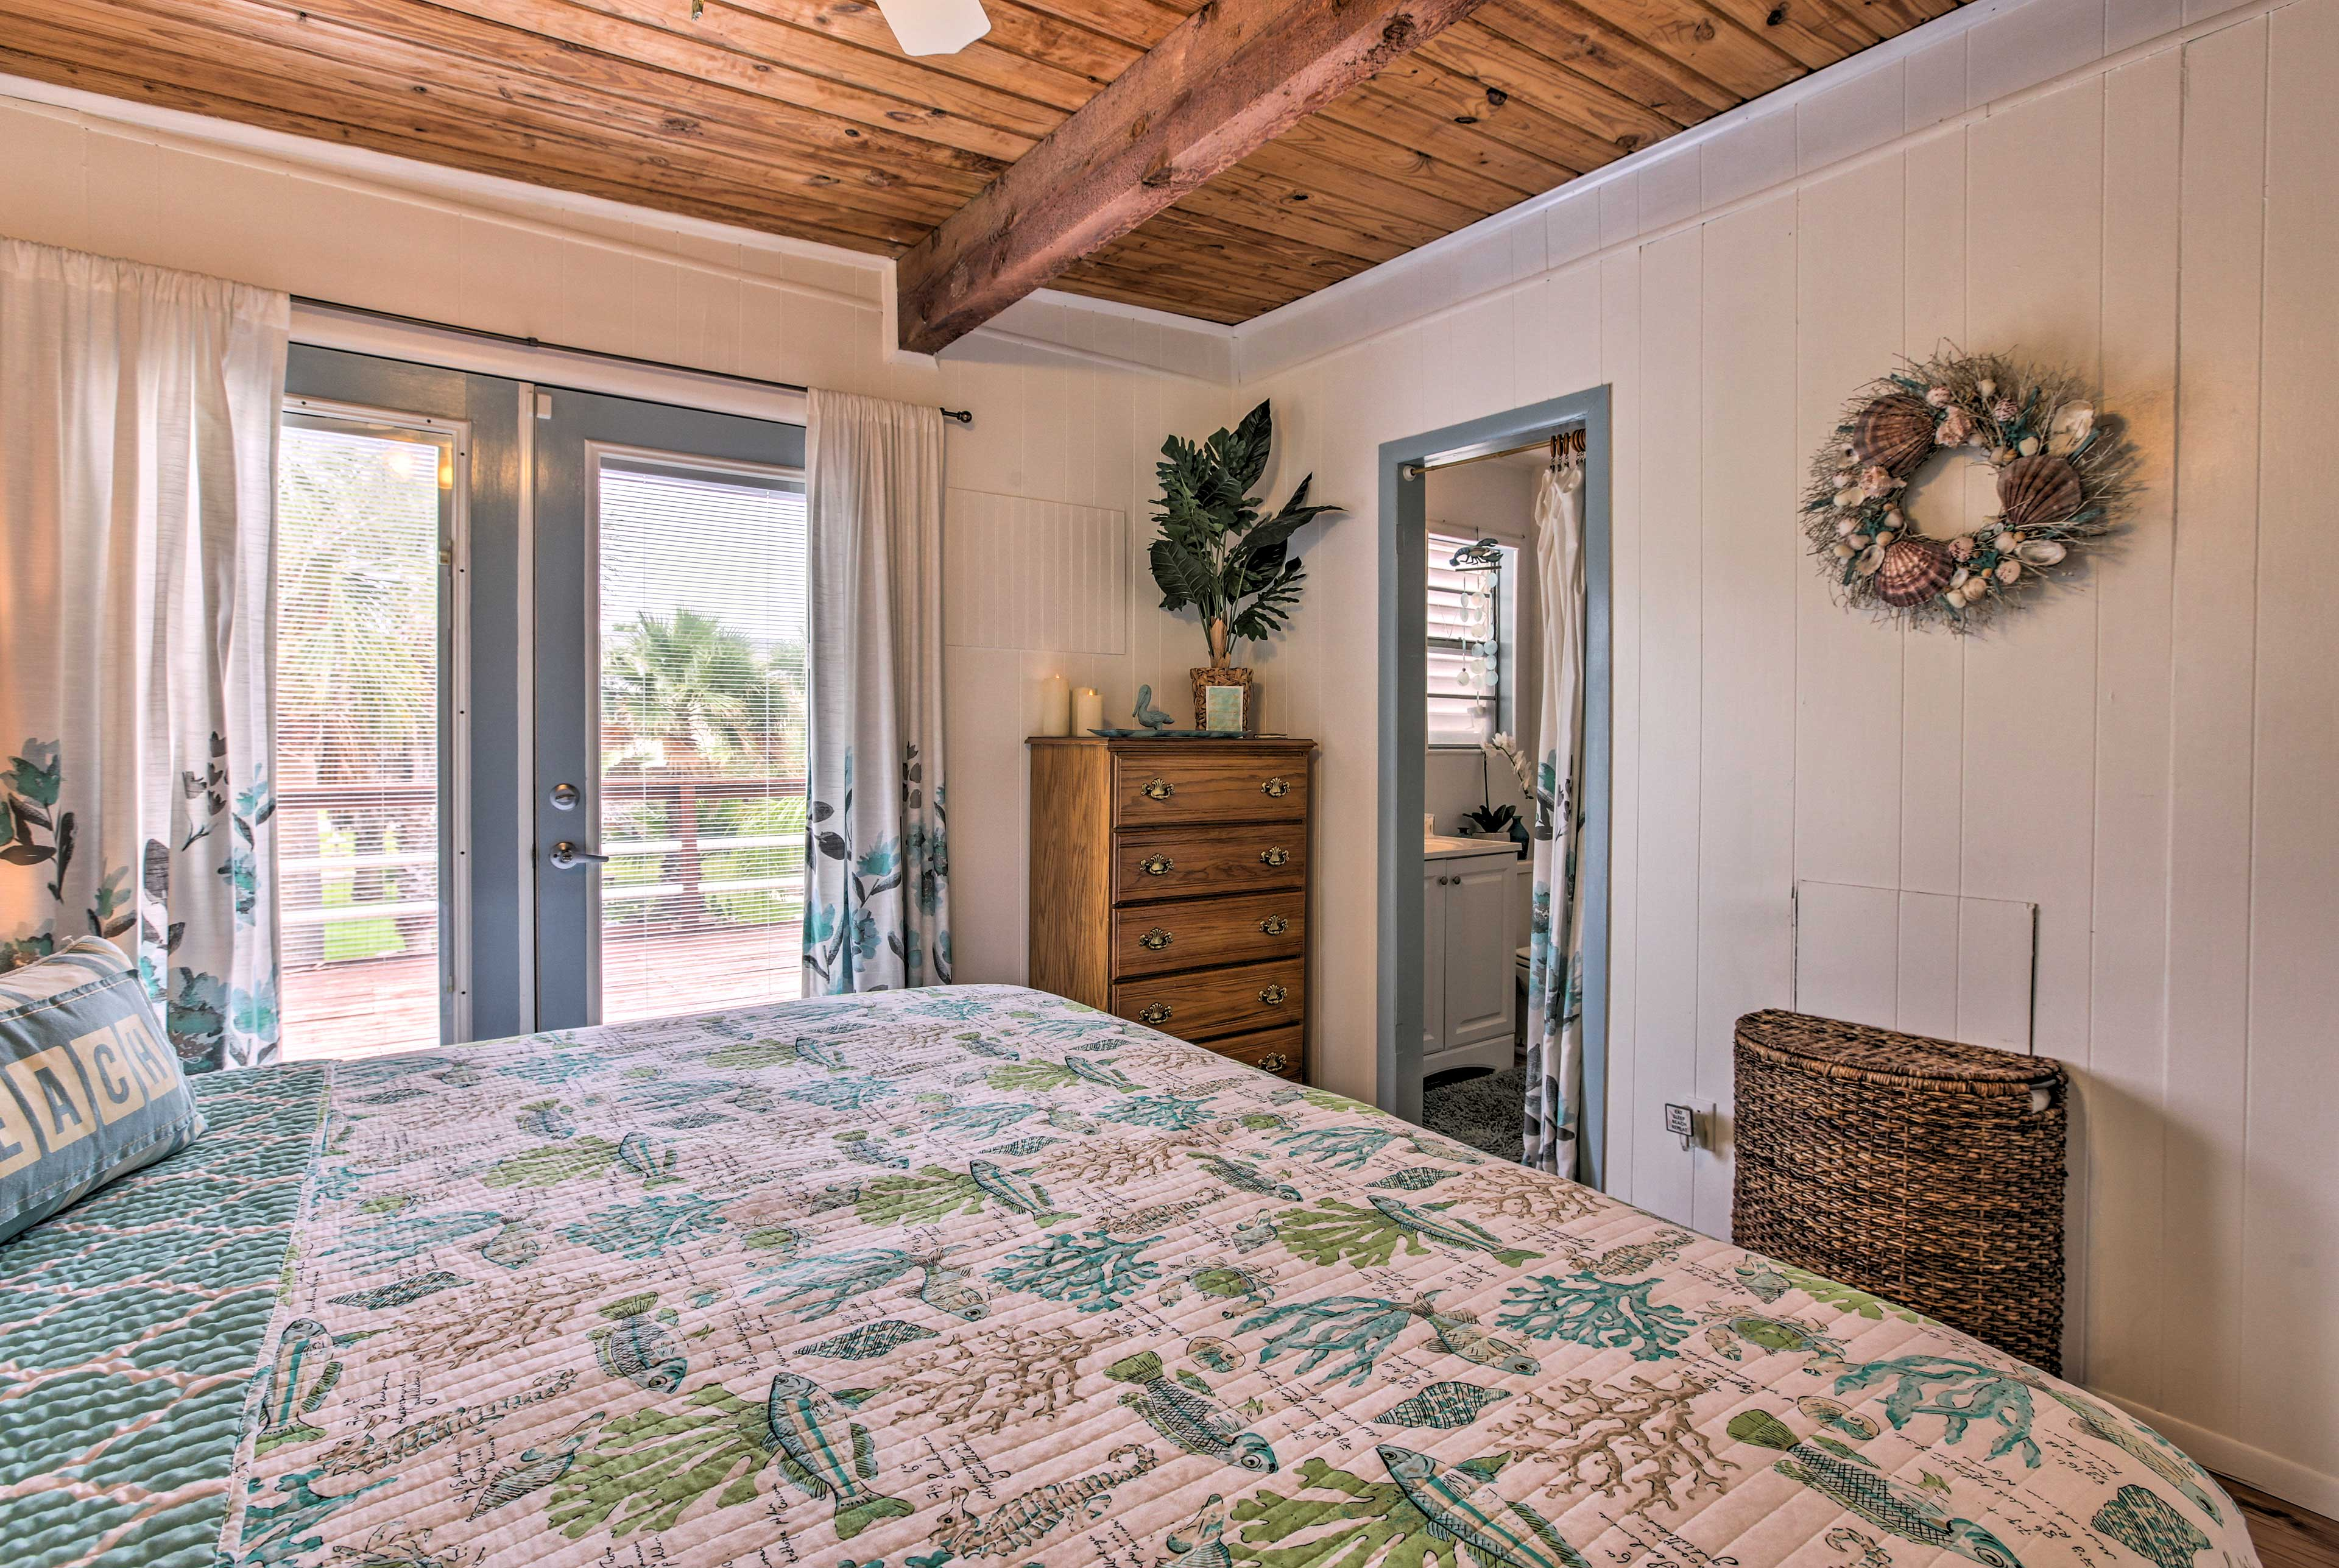 Wake to natural light and tropical views filtering through the glass door.